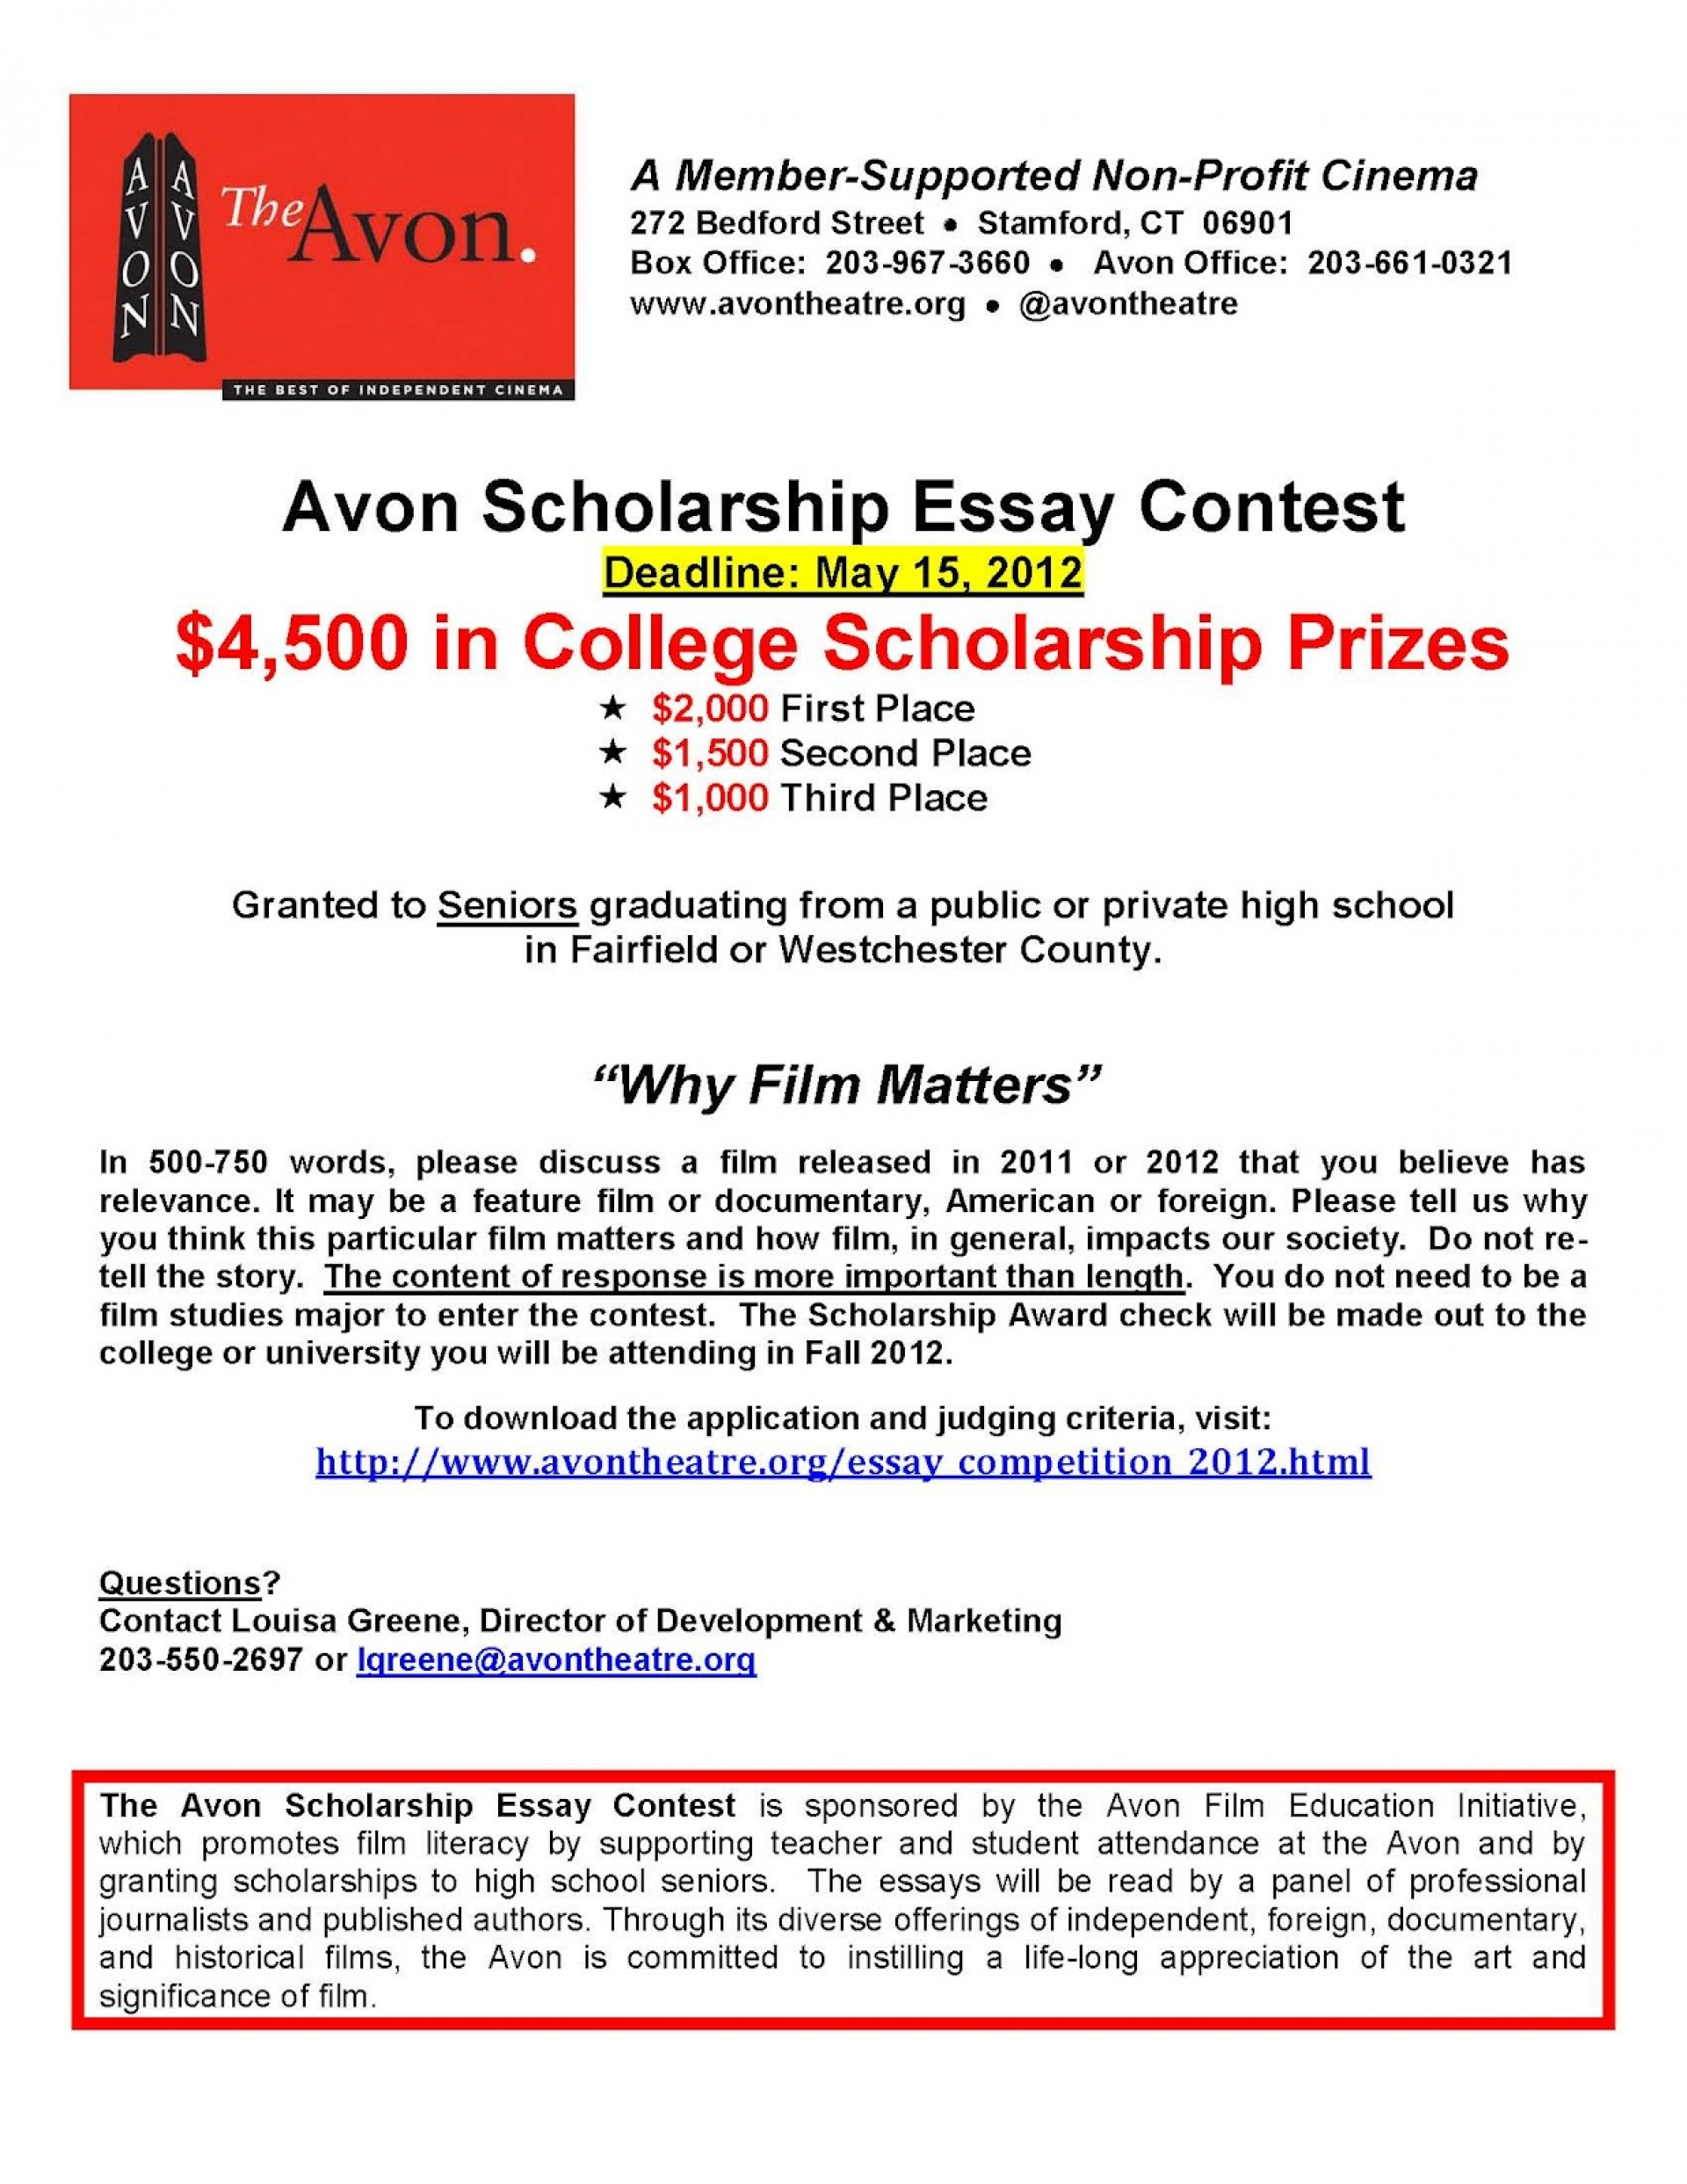 003 Non Essay Scholarships Example No College Scholarship Prowler Free For High School Seniors Avonscholarshipessaycontest2012 In Texas California Class Of Short Imposing Undergraduates 1920